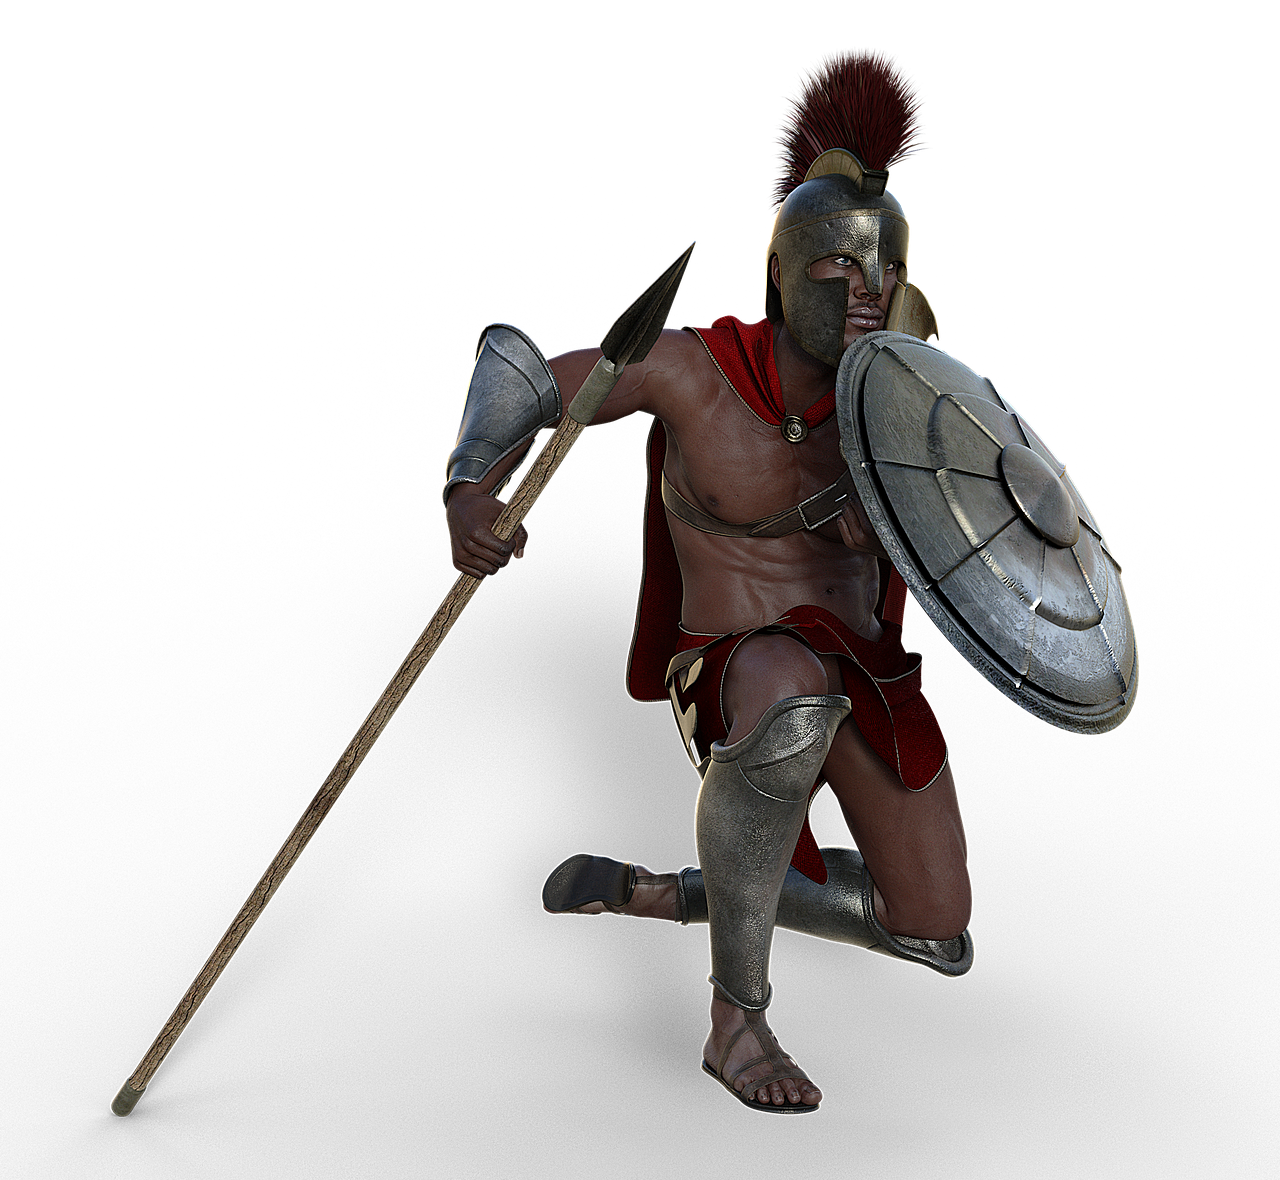 Rendering of a man wearing a spartan novelty helmet